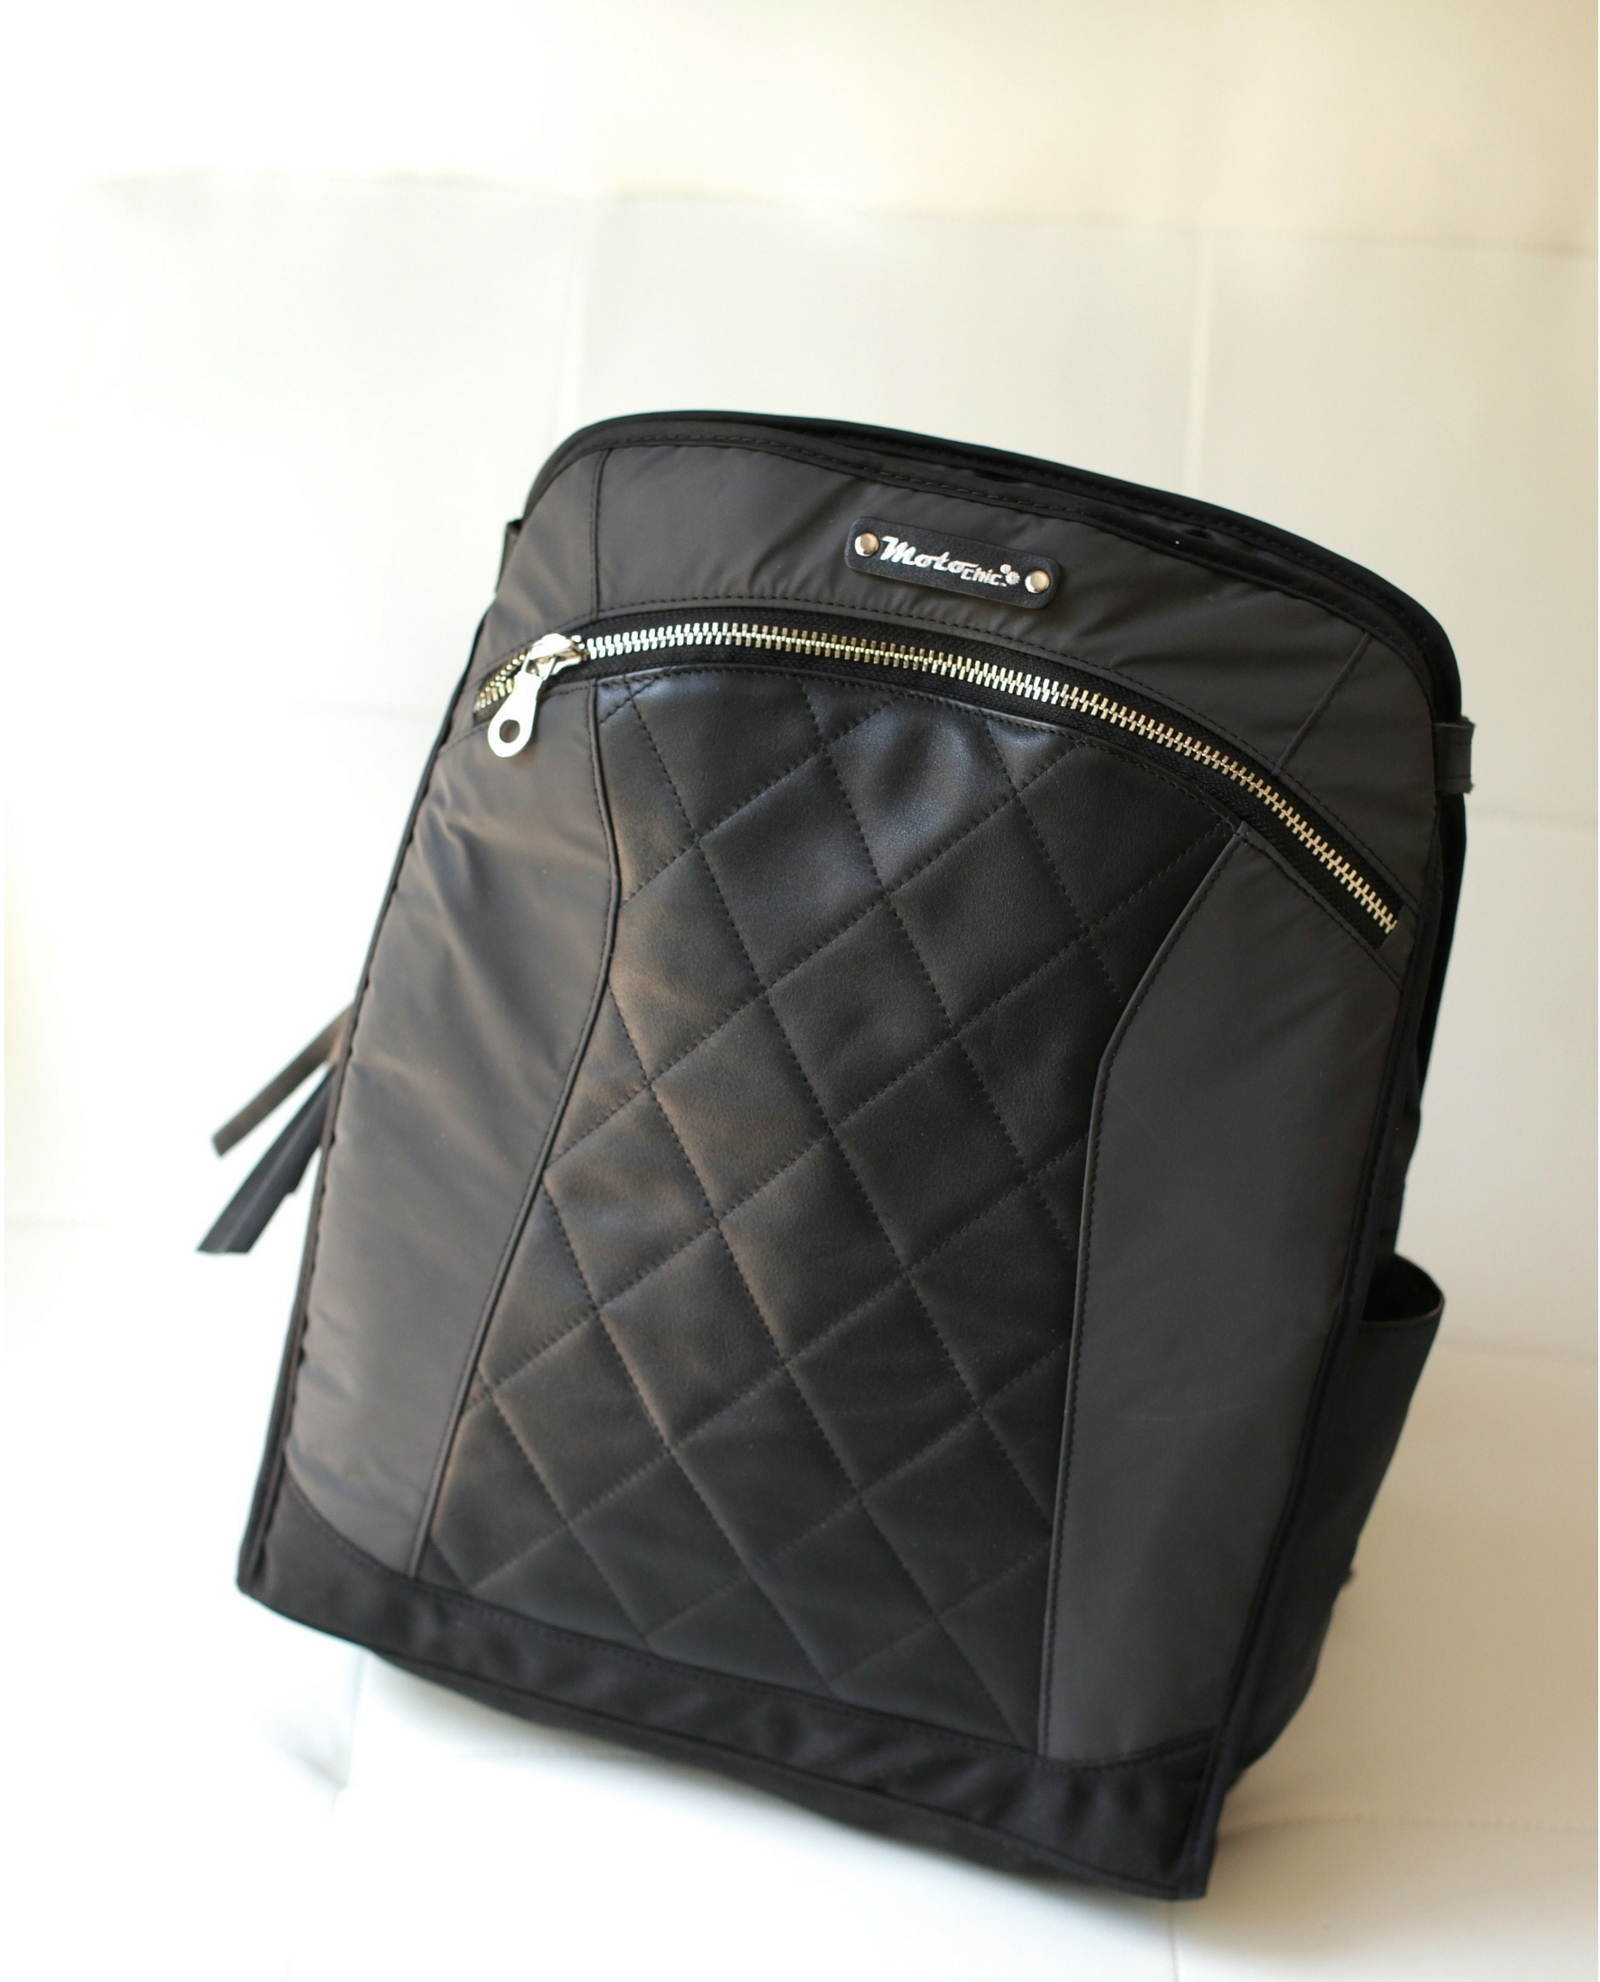 The Lauren bag: Black